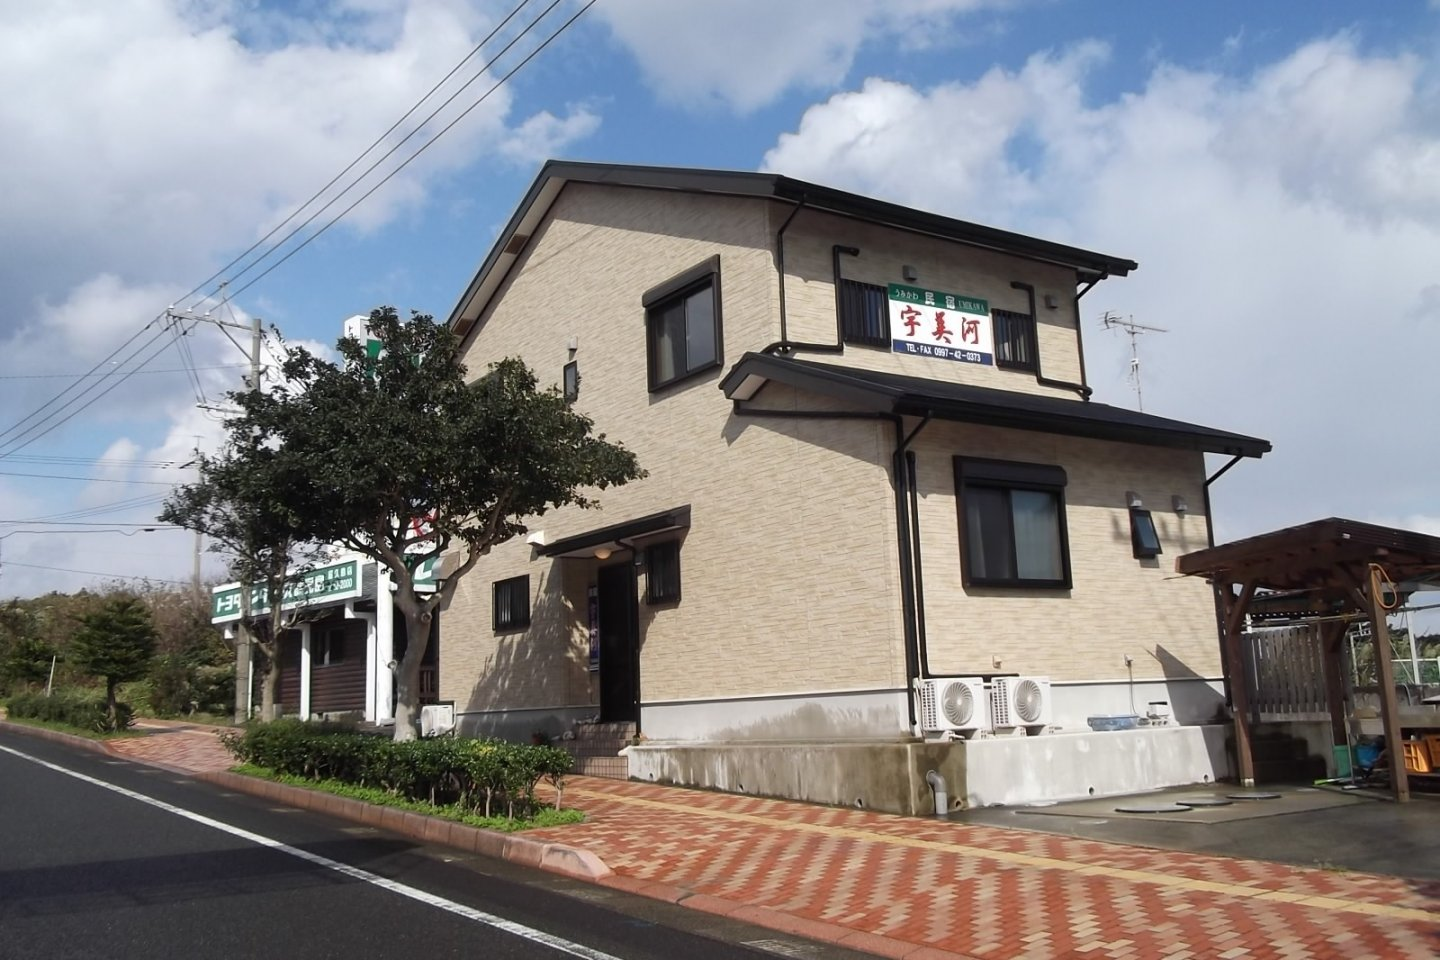 The minshuku from outside